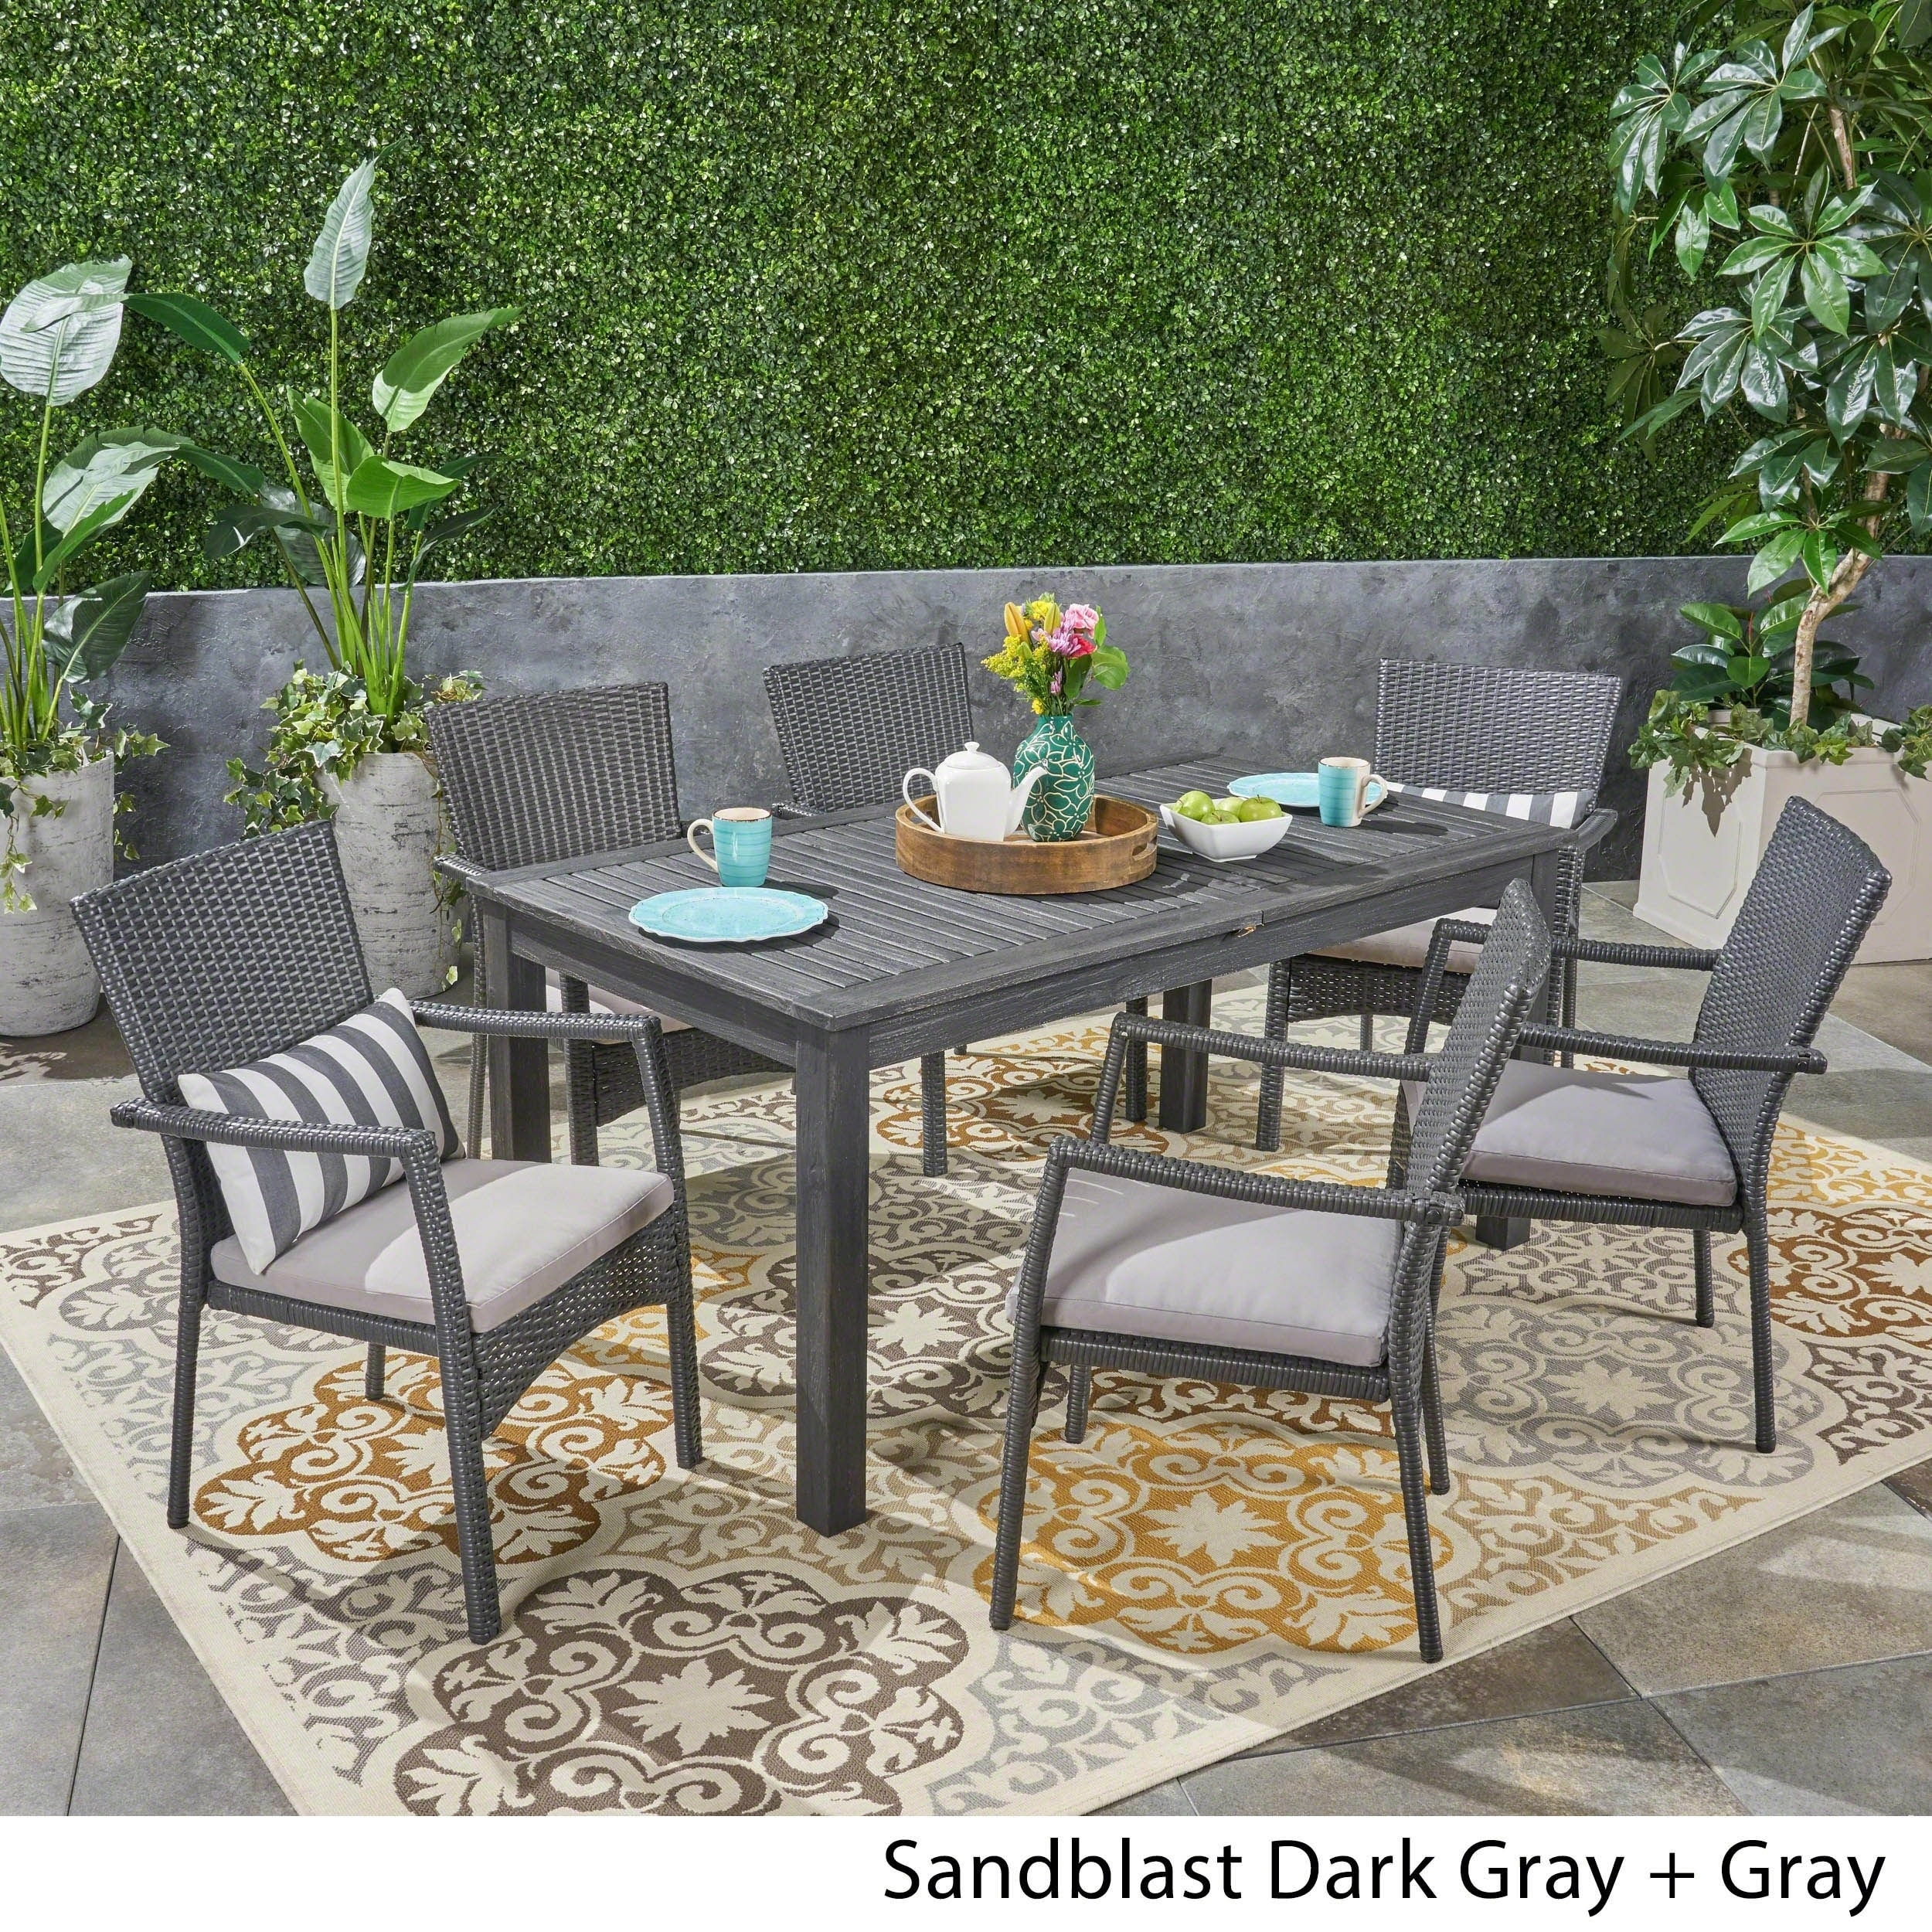 Davenport Patio Furniture.Davenport Outdoor 7 Piece Wood And Wicker Expandable Dining Set By Christopher Knight Home